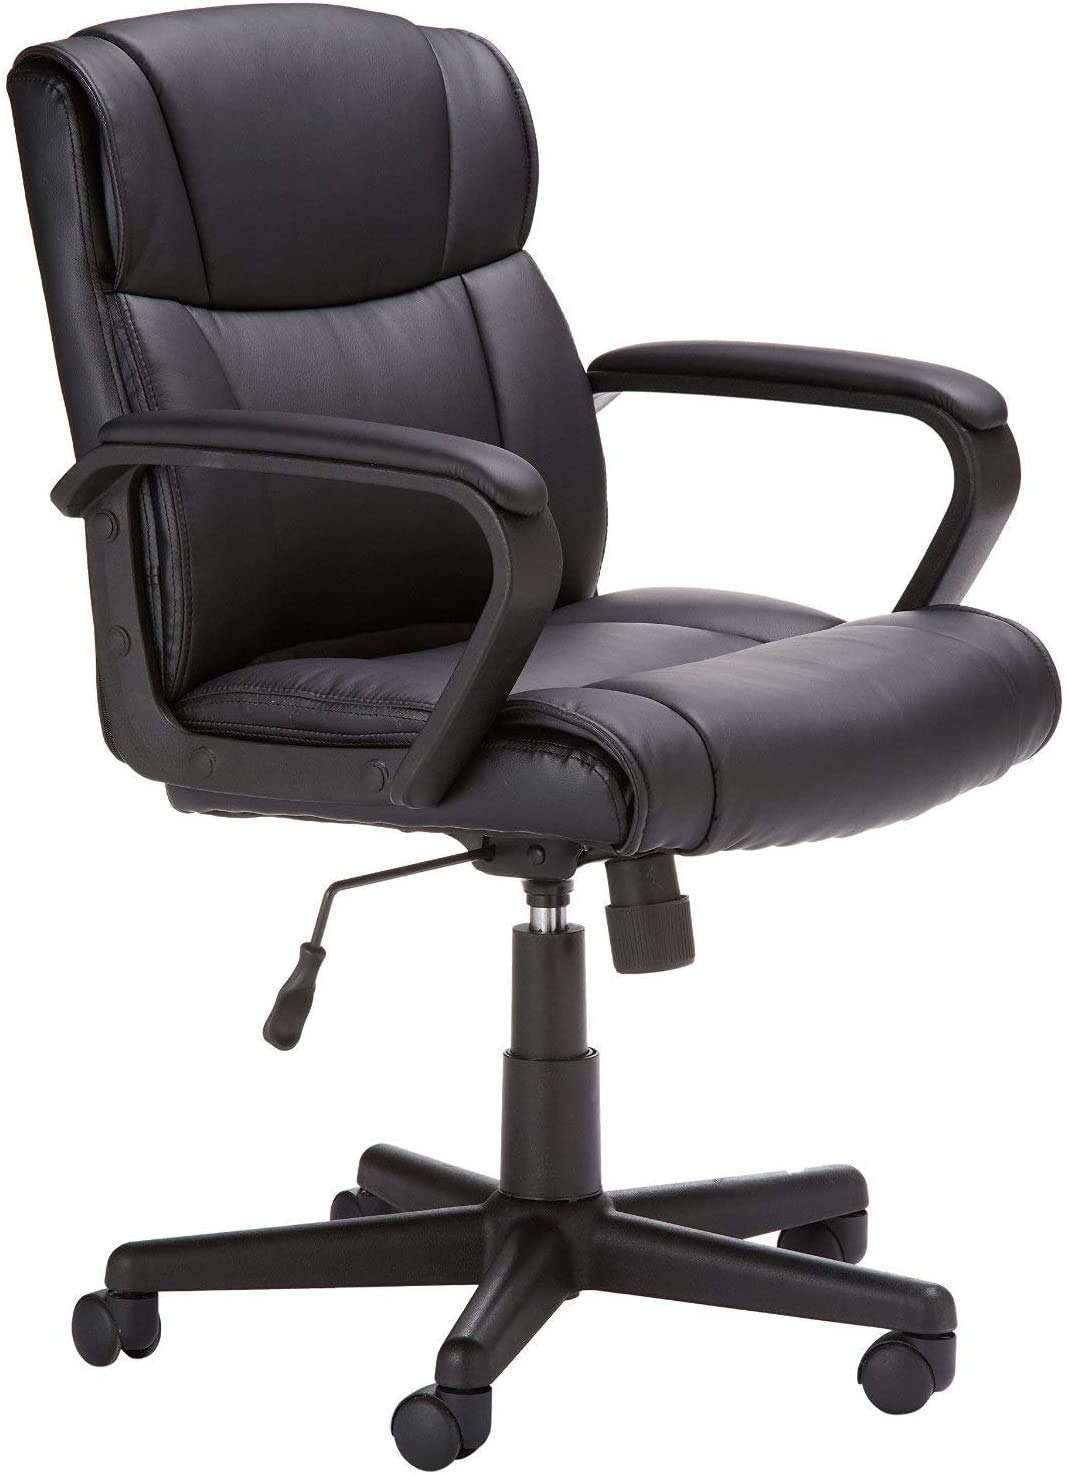 AmazonBasics Mid Back Office Chair review